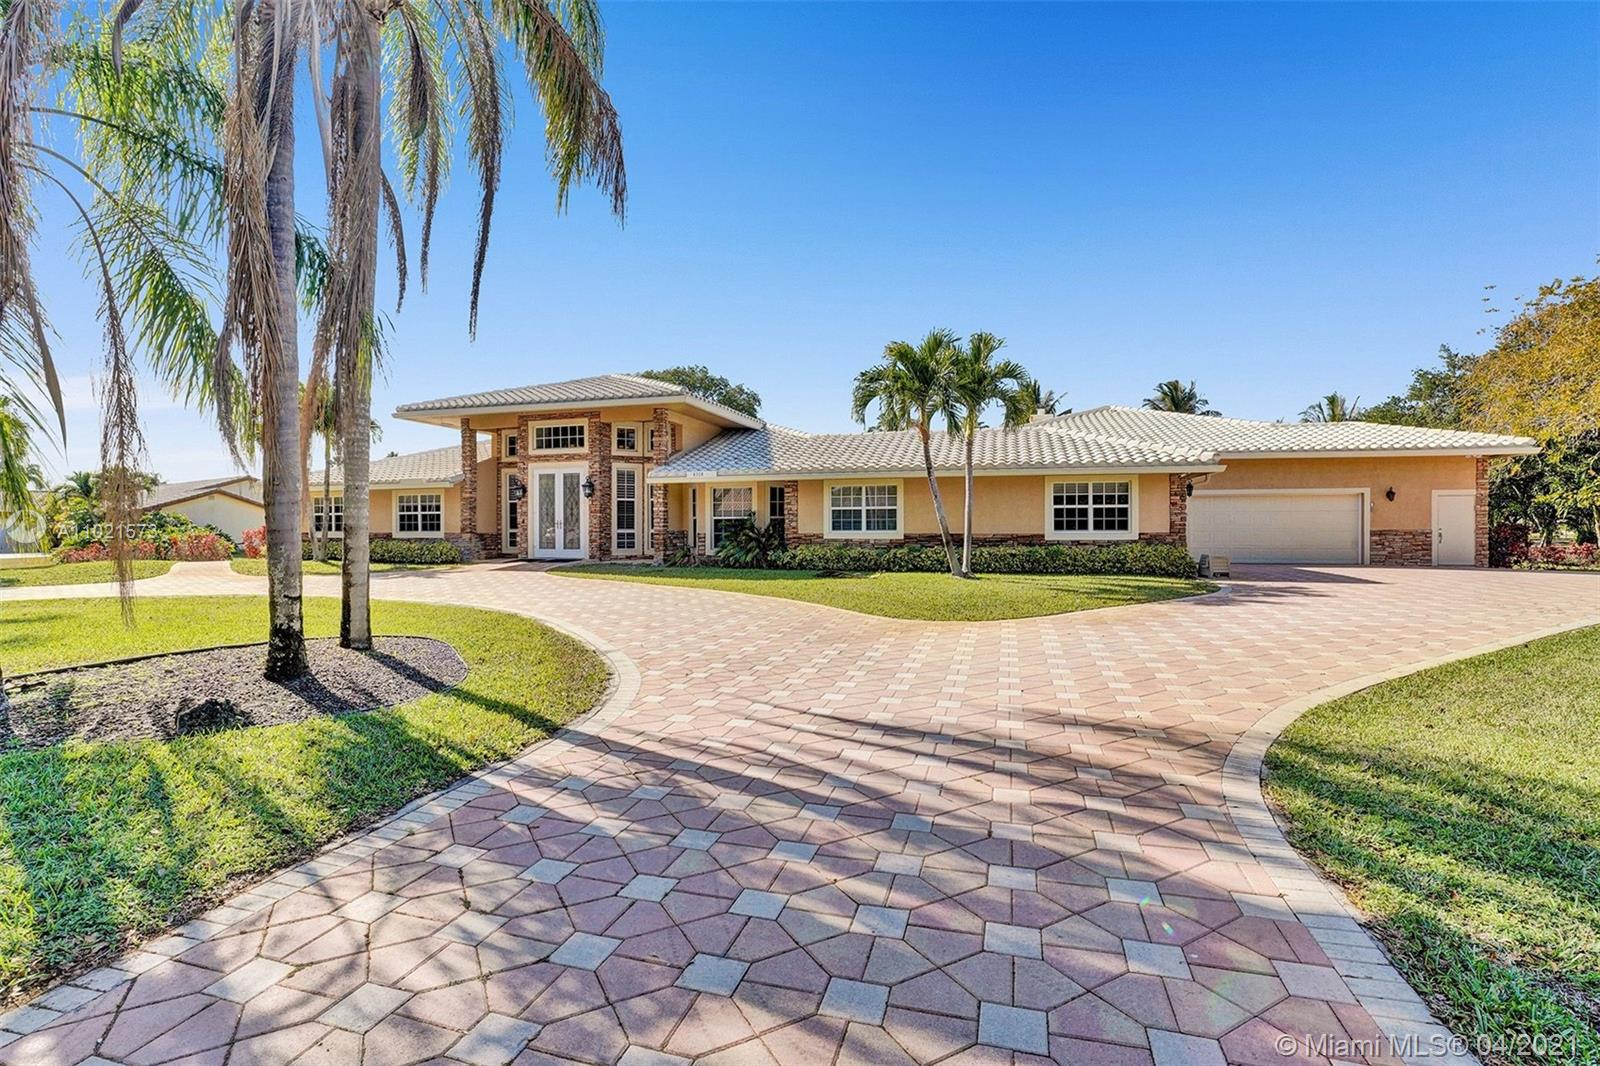 4330 101st Dr, Coral Springs, Florida 33065